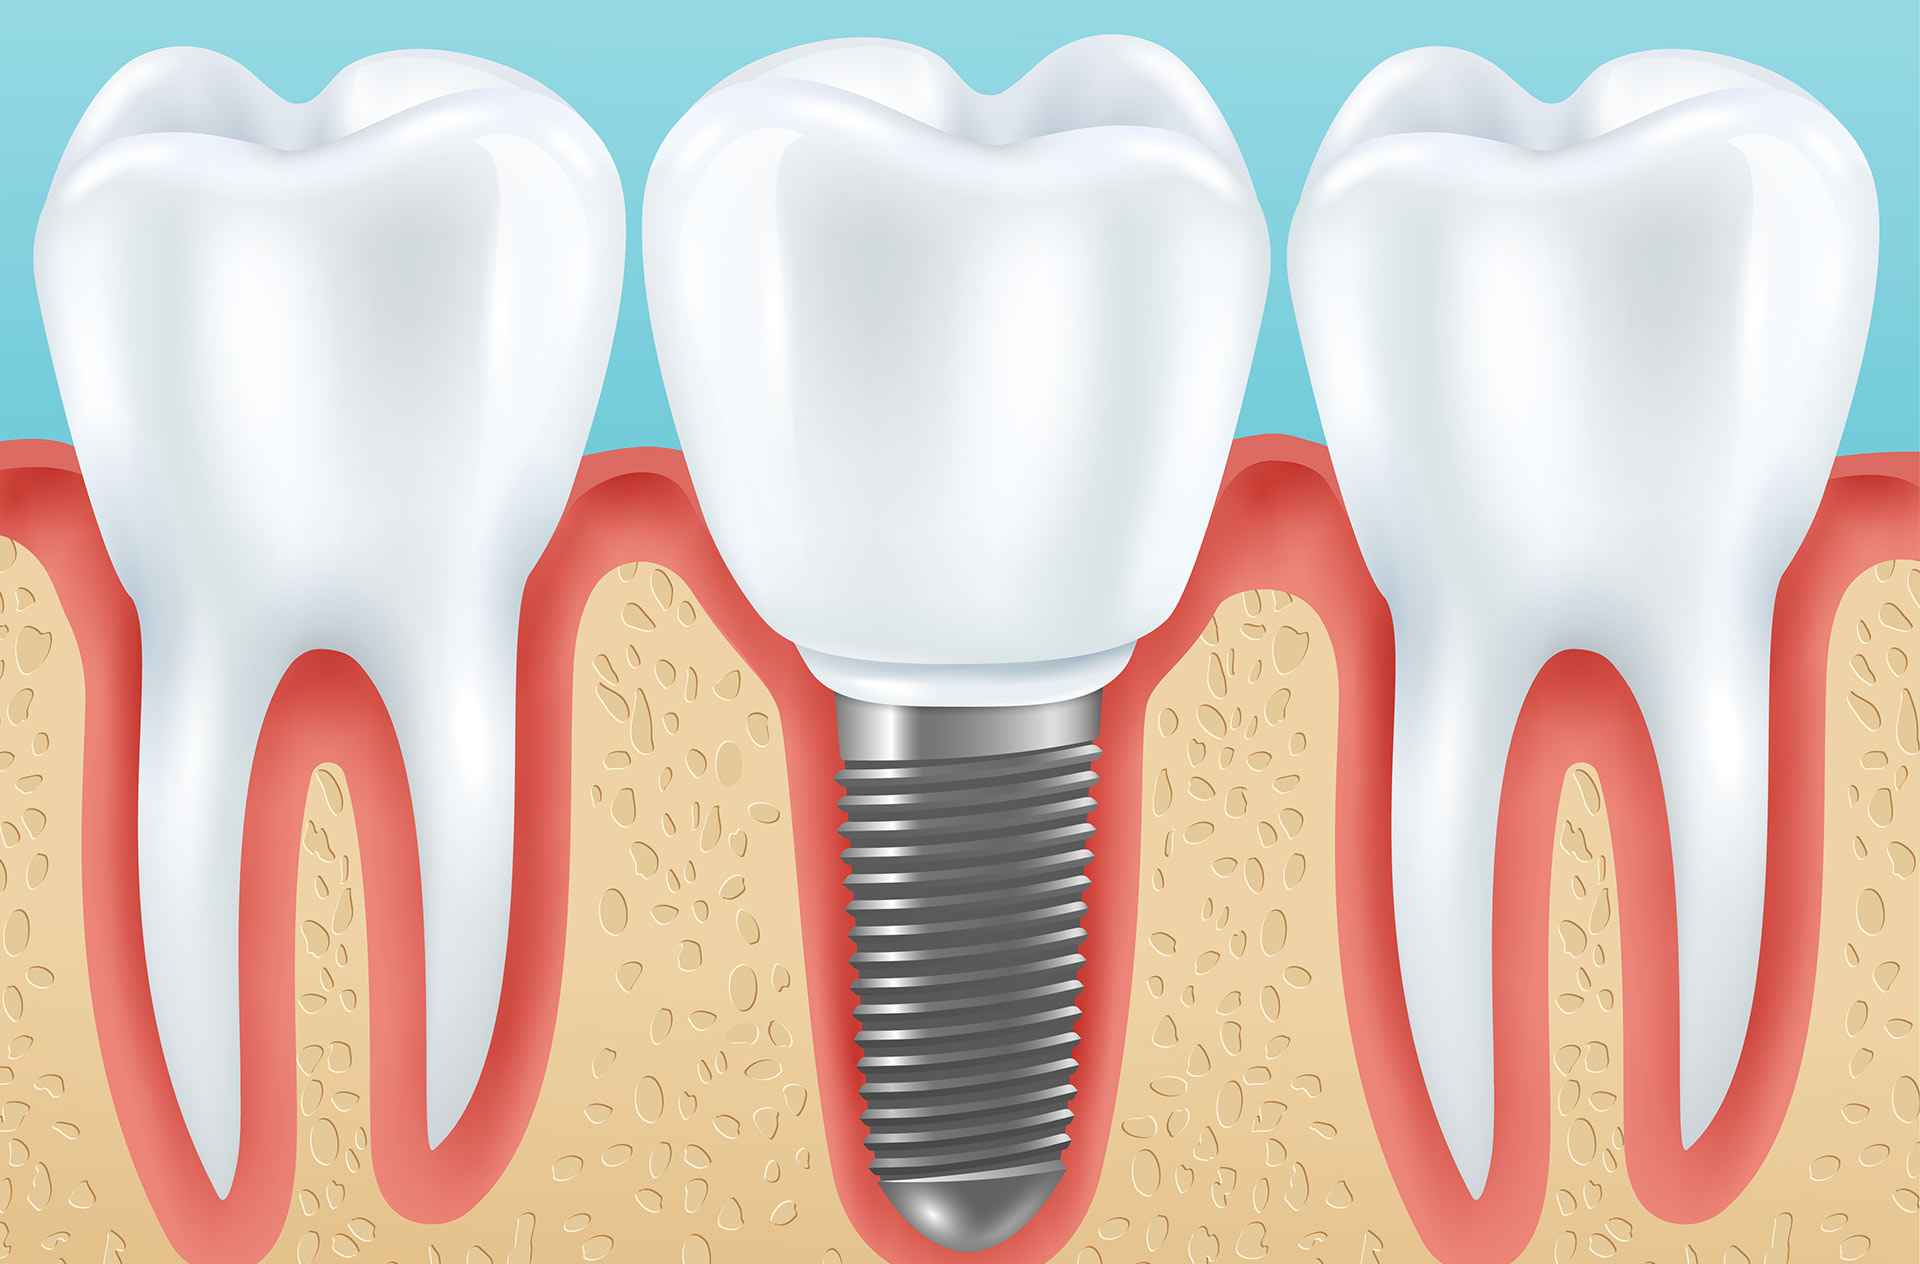 Oral surgery implantology